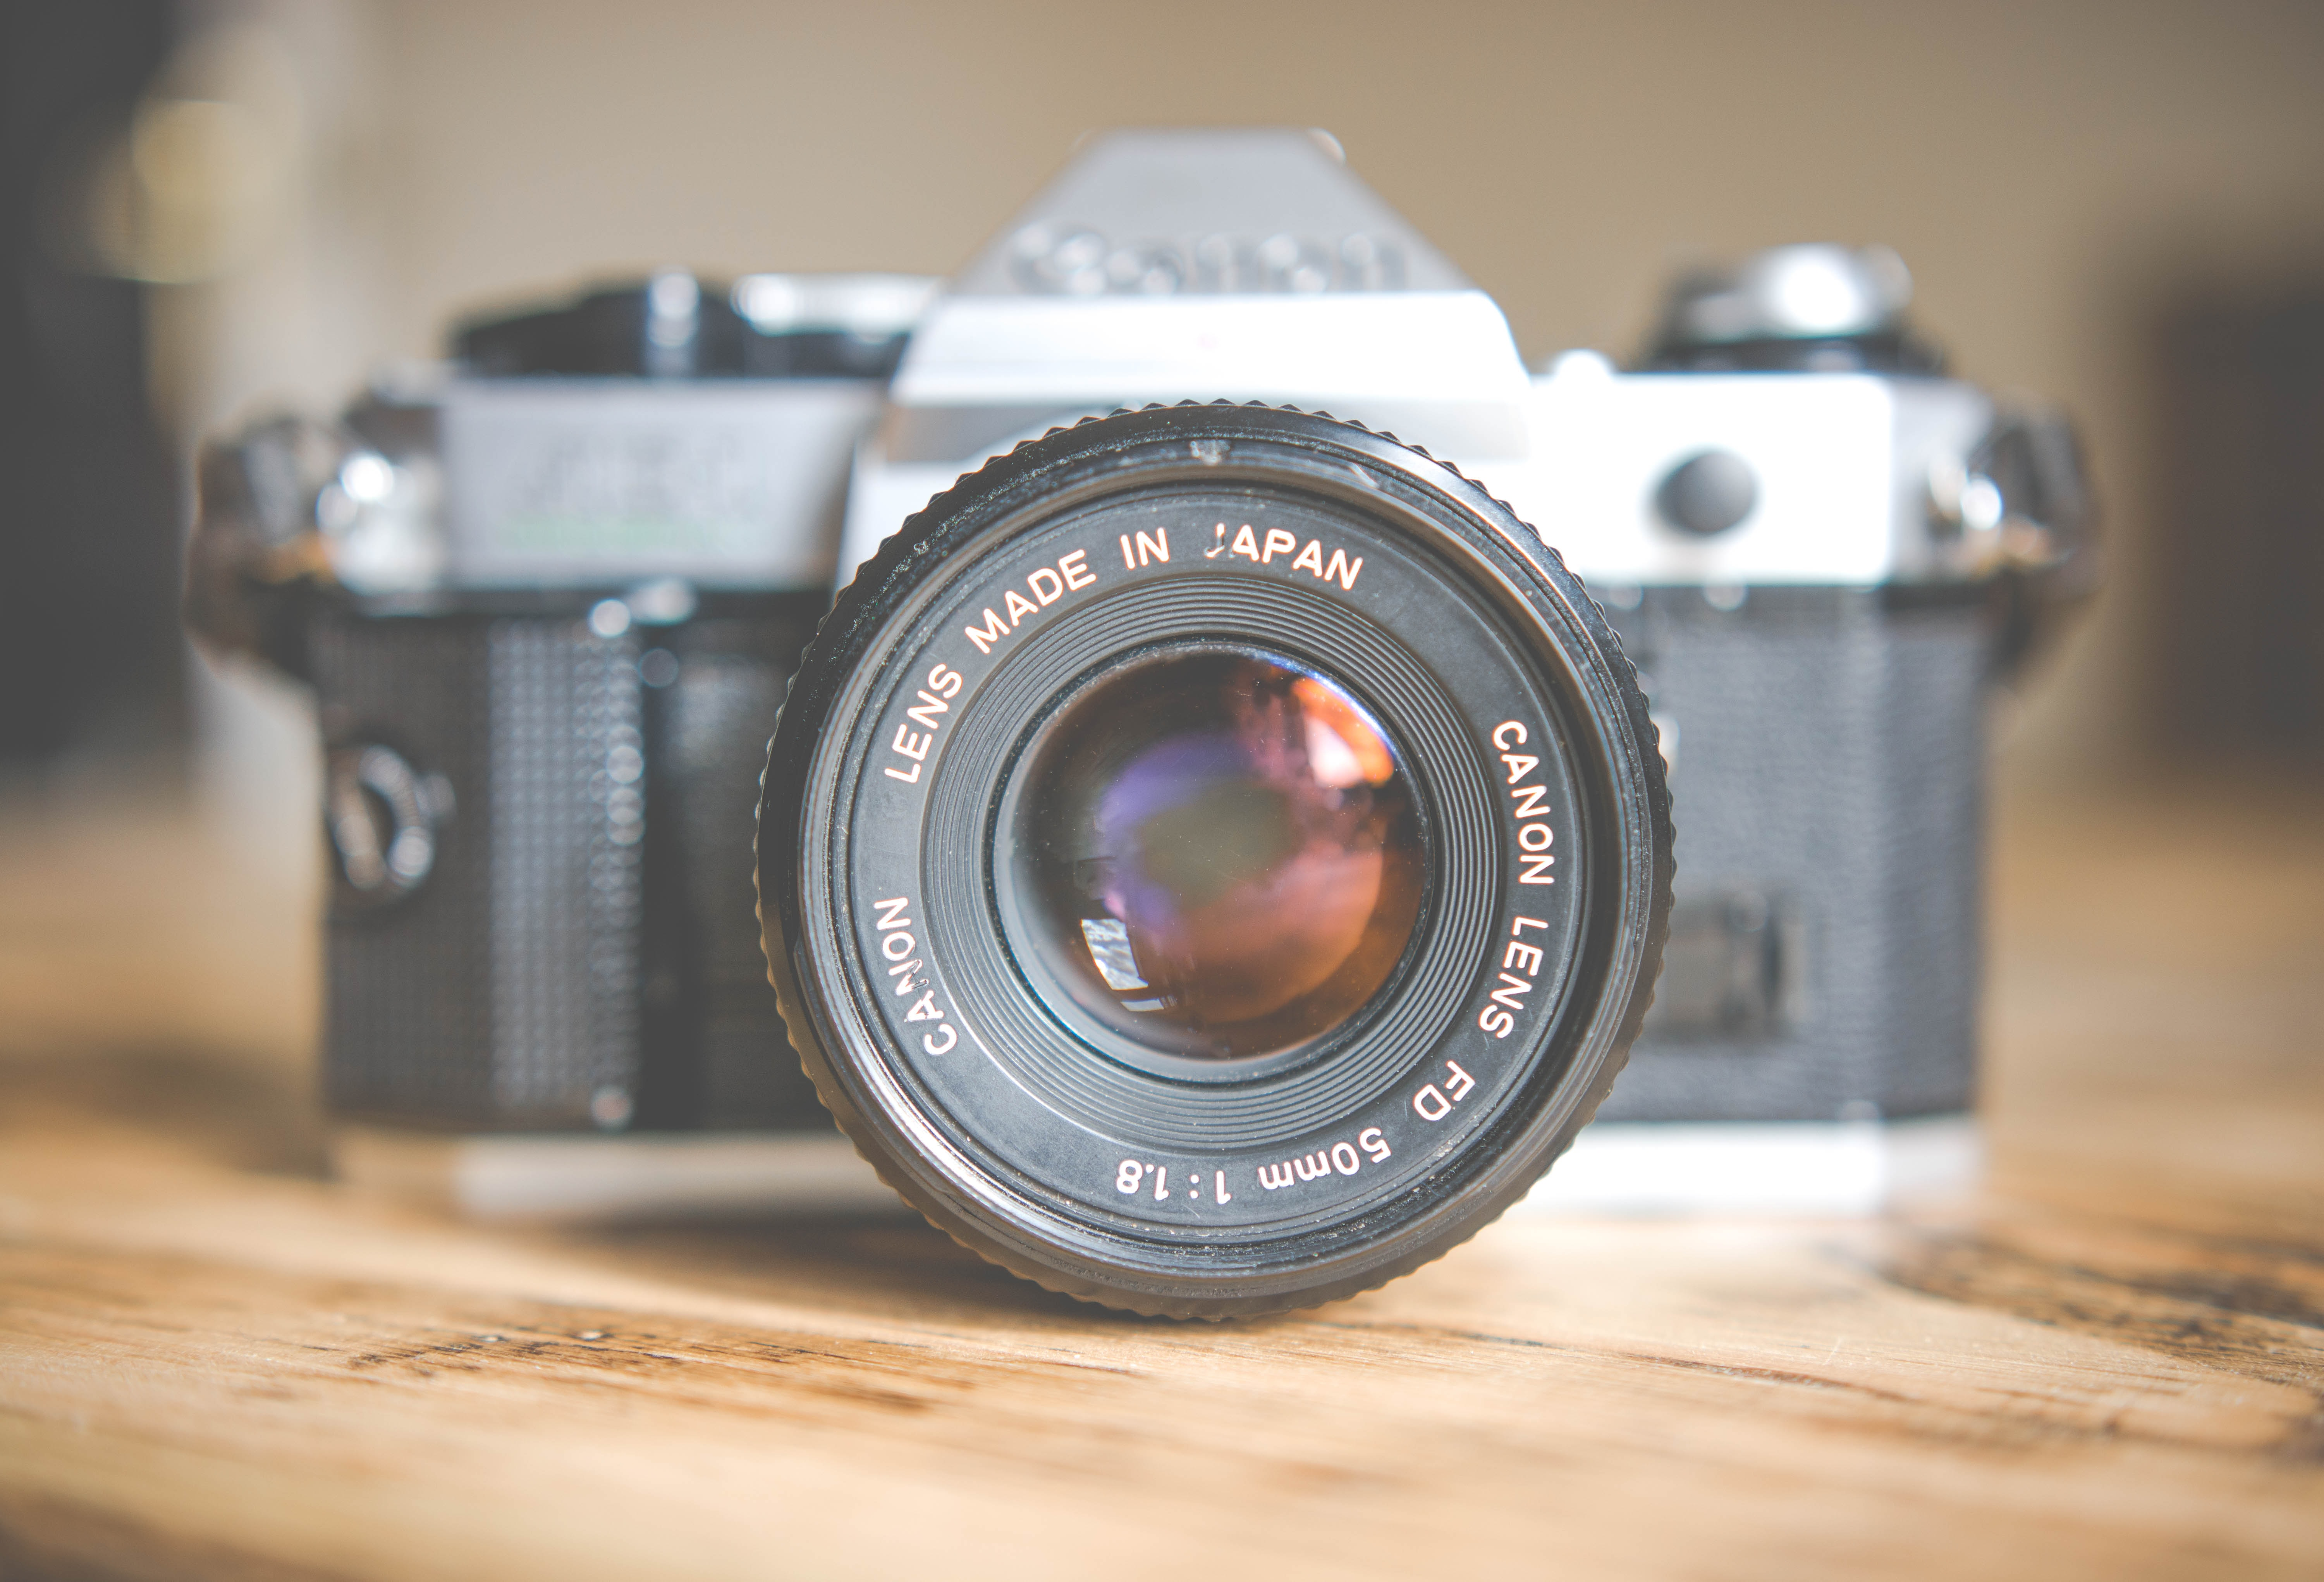 gray and black DSLR camera in shallow focus photography